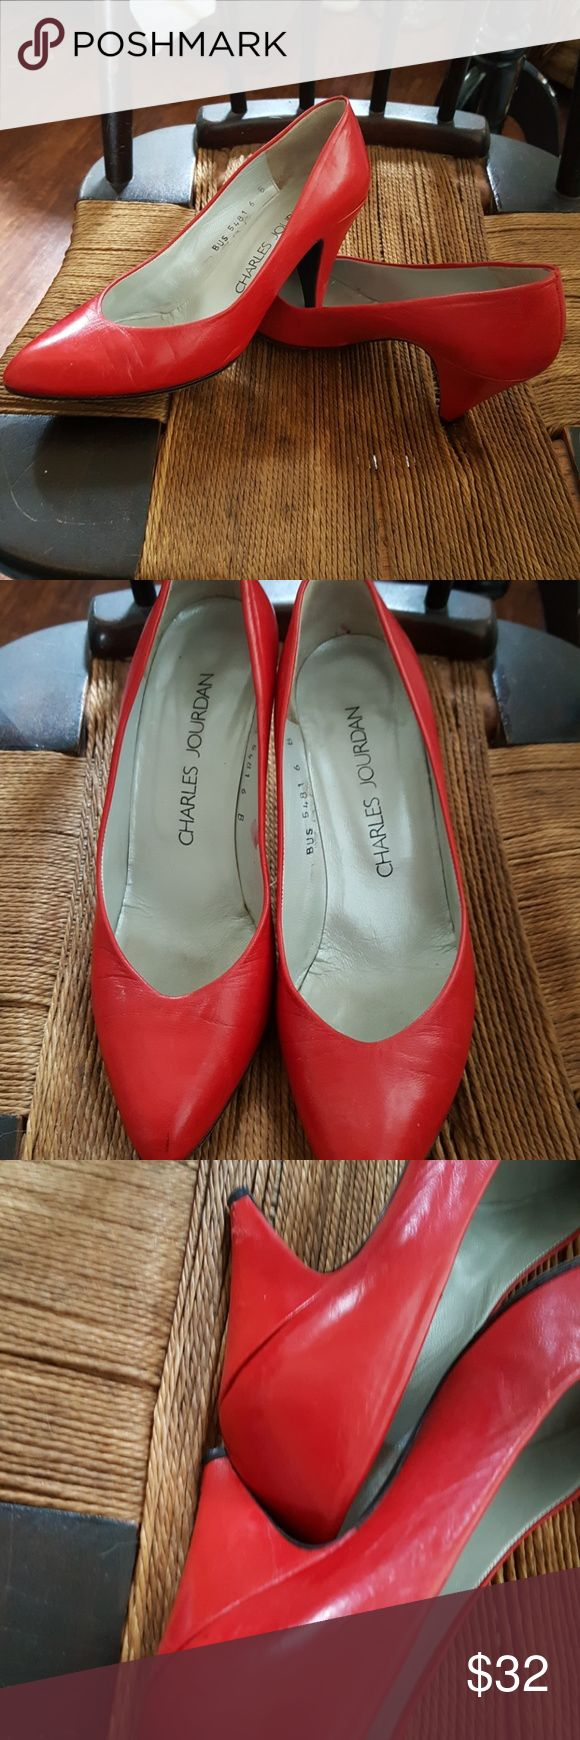 Carles Jourdan fire engine red pumps 6 These are very costly shoes in a super soft leather made in Spain with leather soles. No original box. Don't miss these beauties. Reasonable offers welcome. Charles Jourdan Shoes Heels